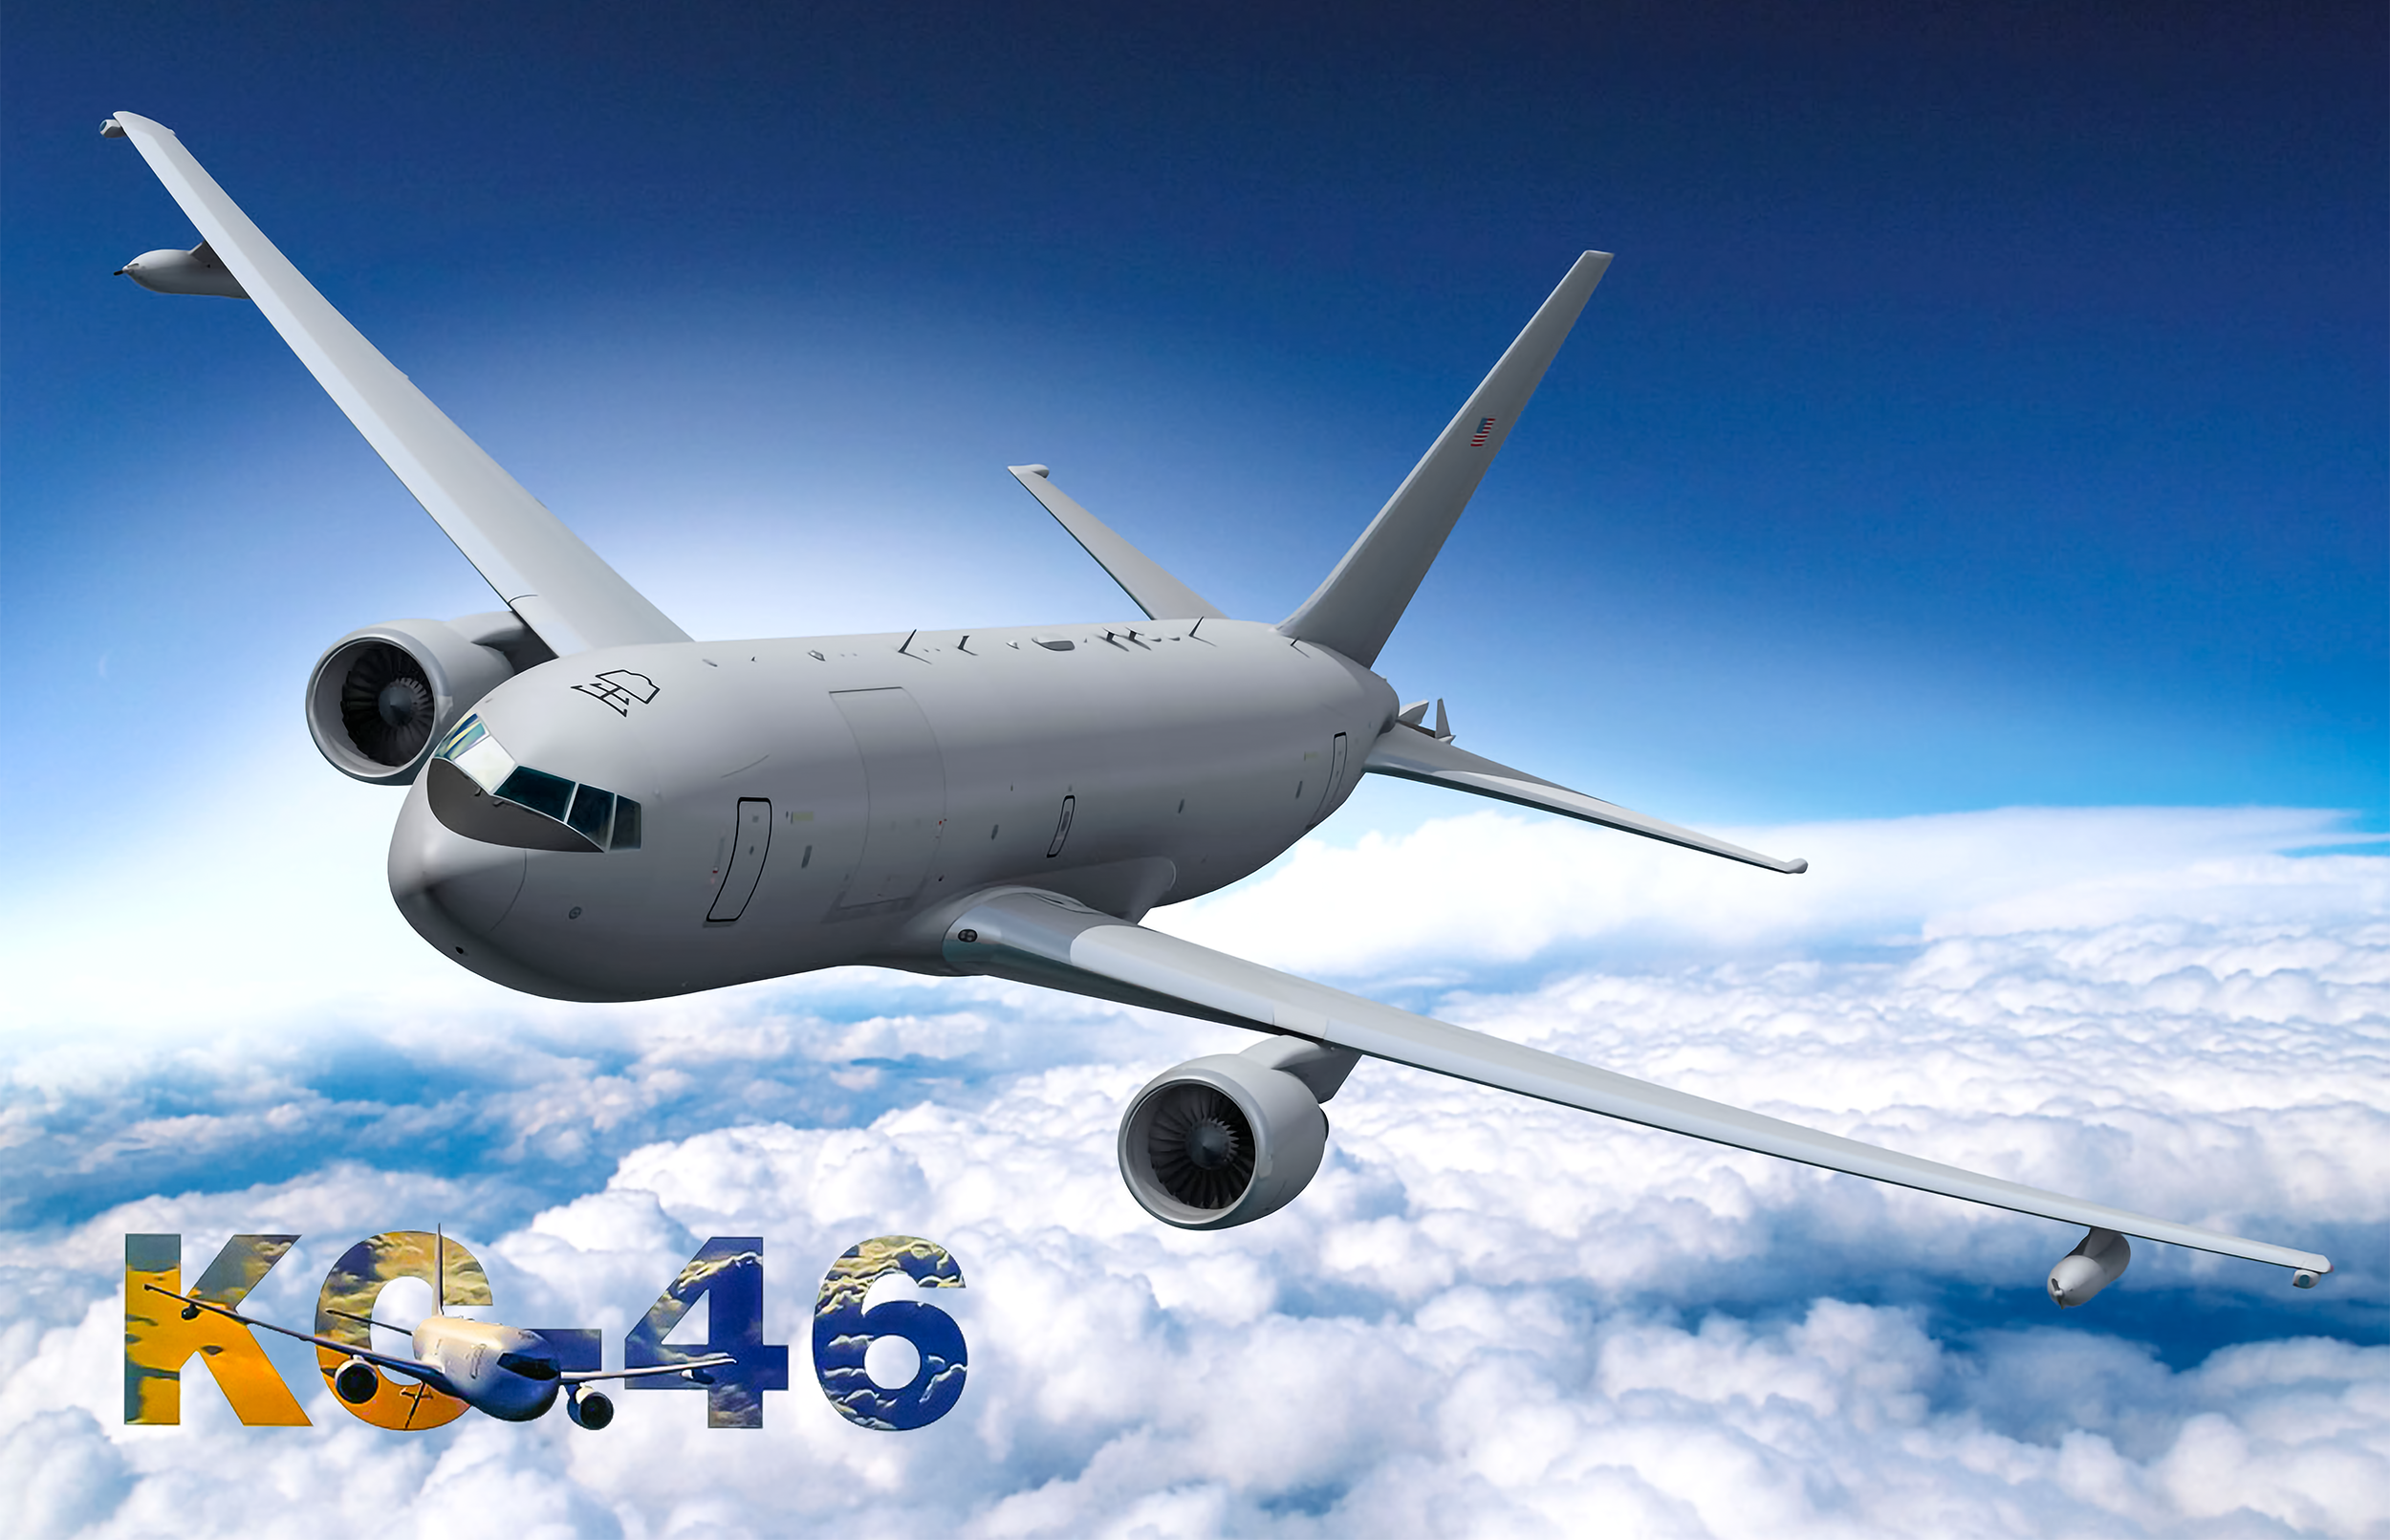 KC-46 Title Page.png